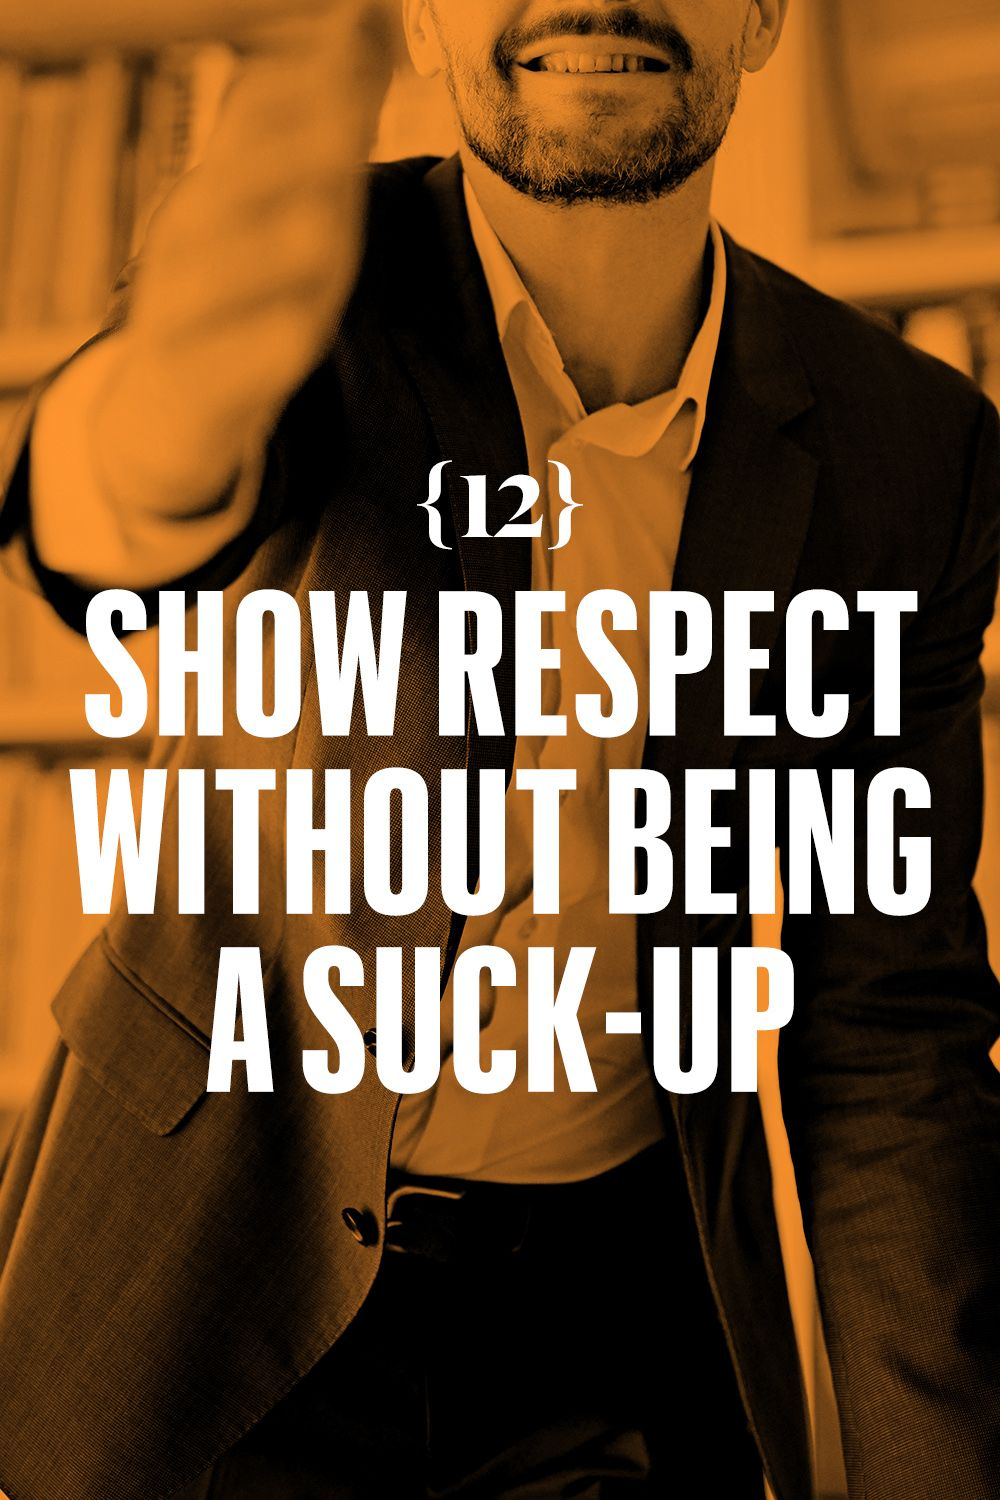 <p>Show respect without being a suck-up. Respect the following, in this order: age, experience, record, reputation. Don't mention any of it.</p>